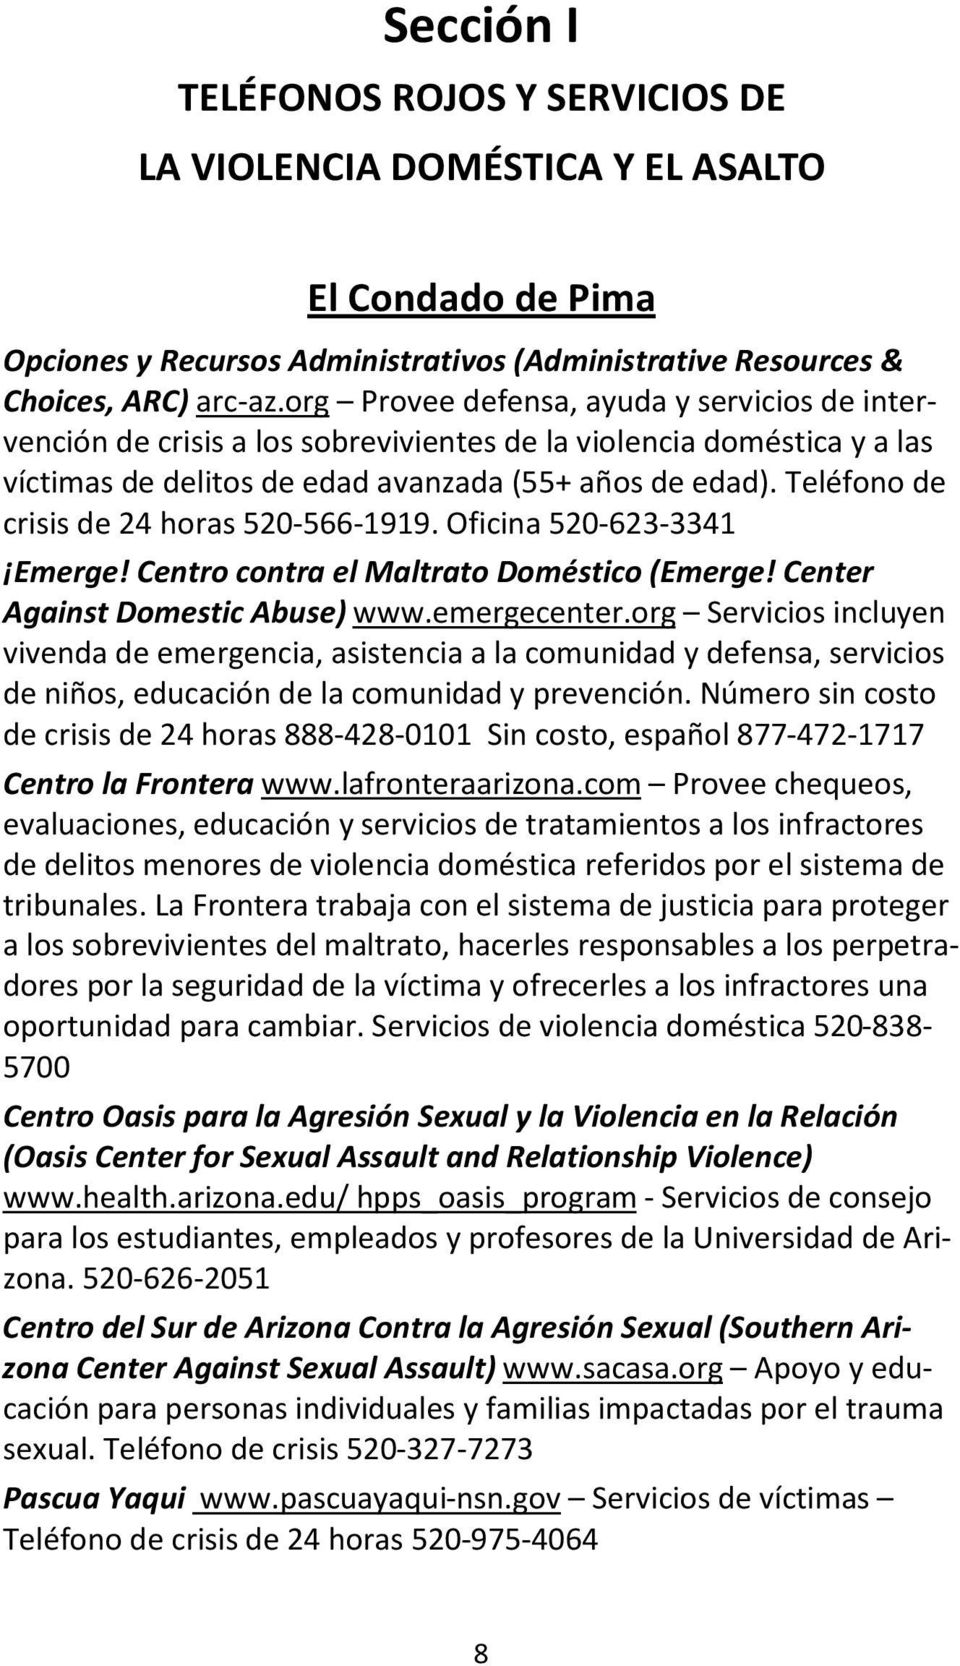 Teléfono de crisis de 24 horas 520-566-1919. Oficina 520-623-3341 Emerge! Centro contra el Maltrato Doméstico (Emerge! Center Against Domestic Abuse) www.emergecenter.